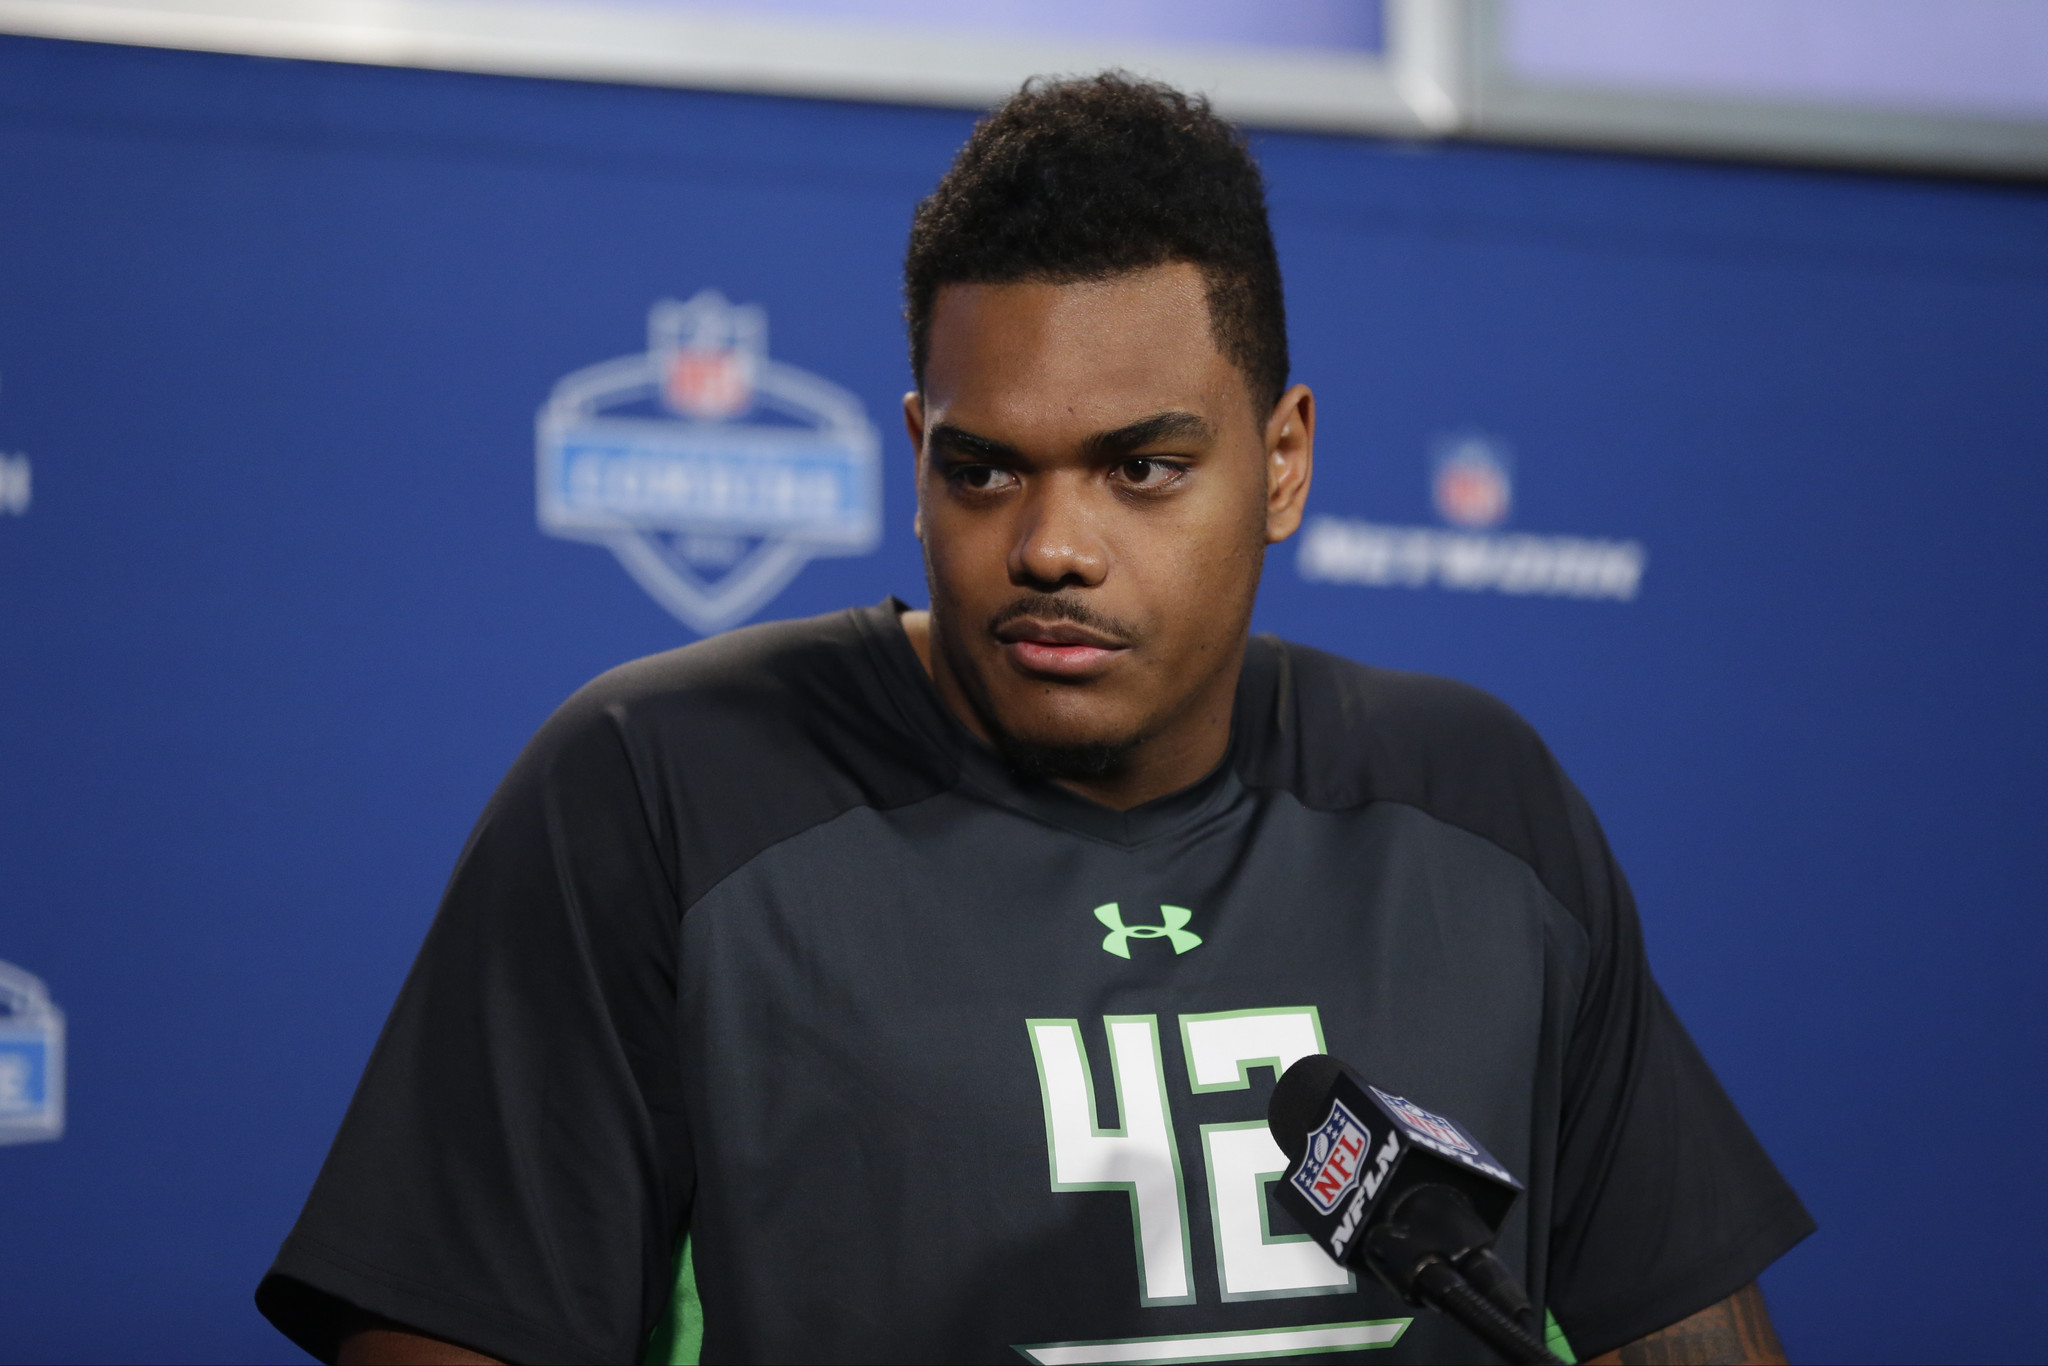 Bal-ravens-take-notre-dame-s-ronnie-stanley-with-the-no-6-pick-20160428